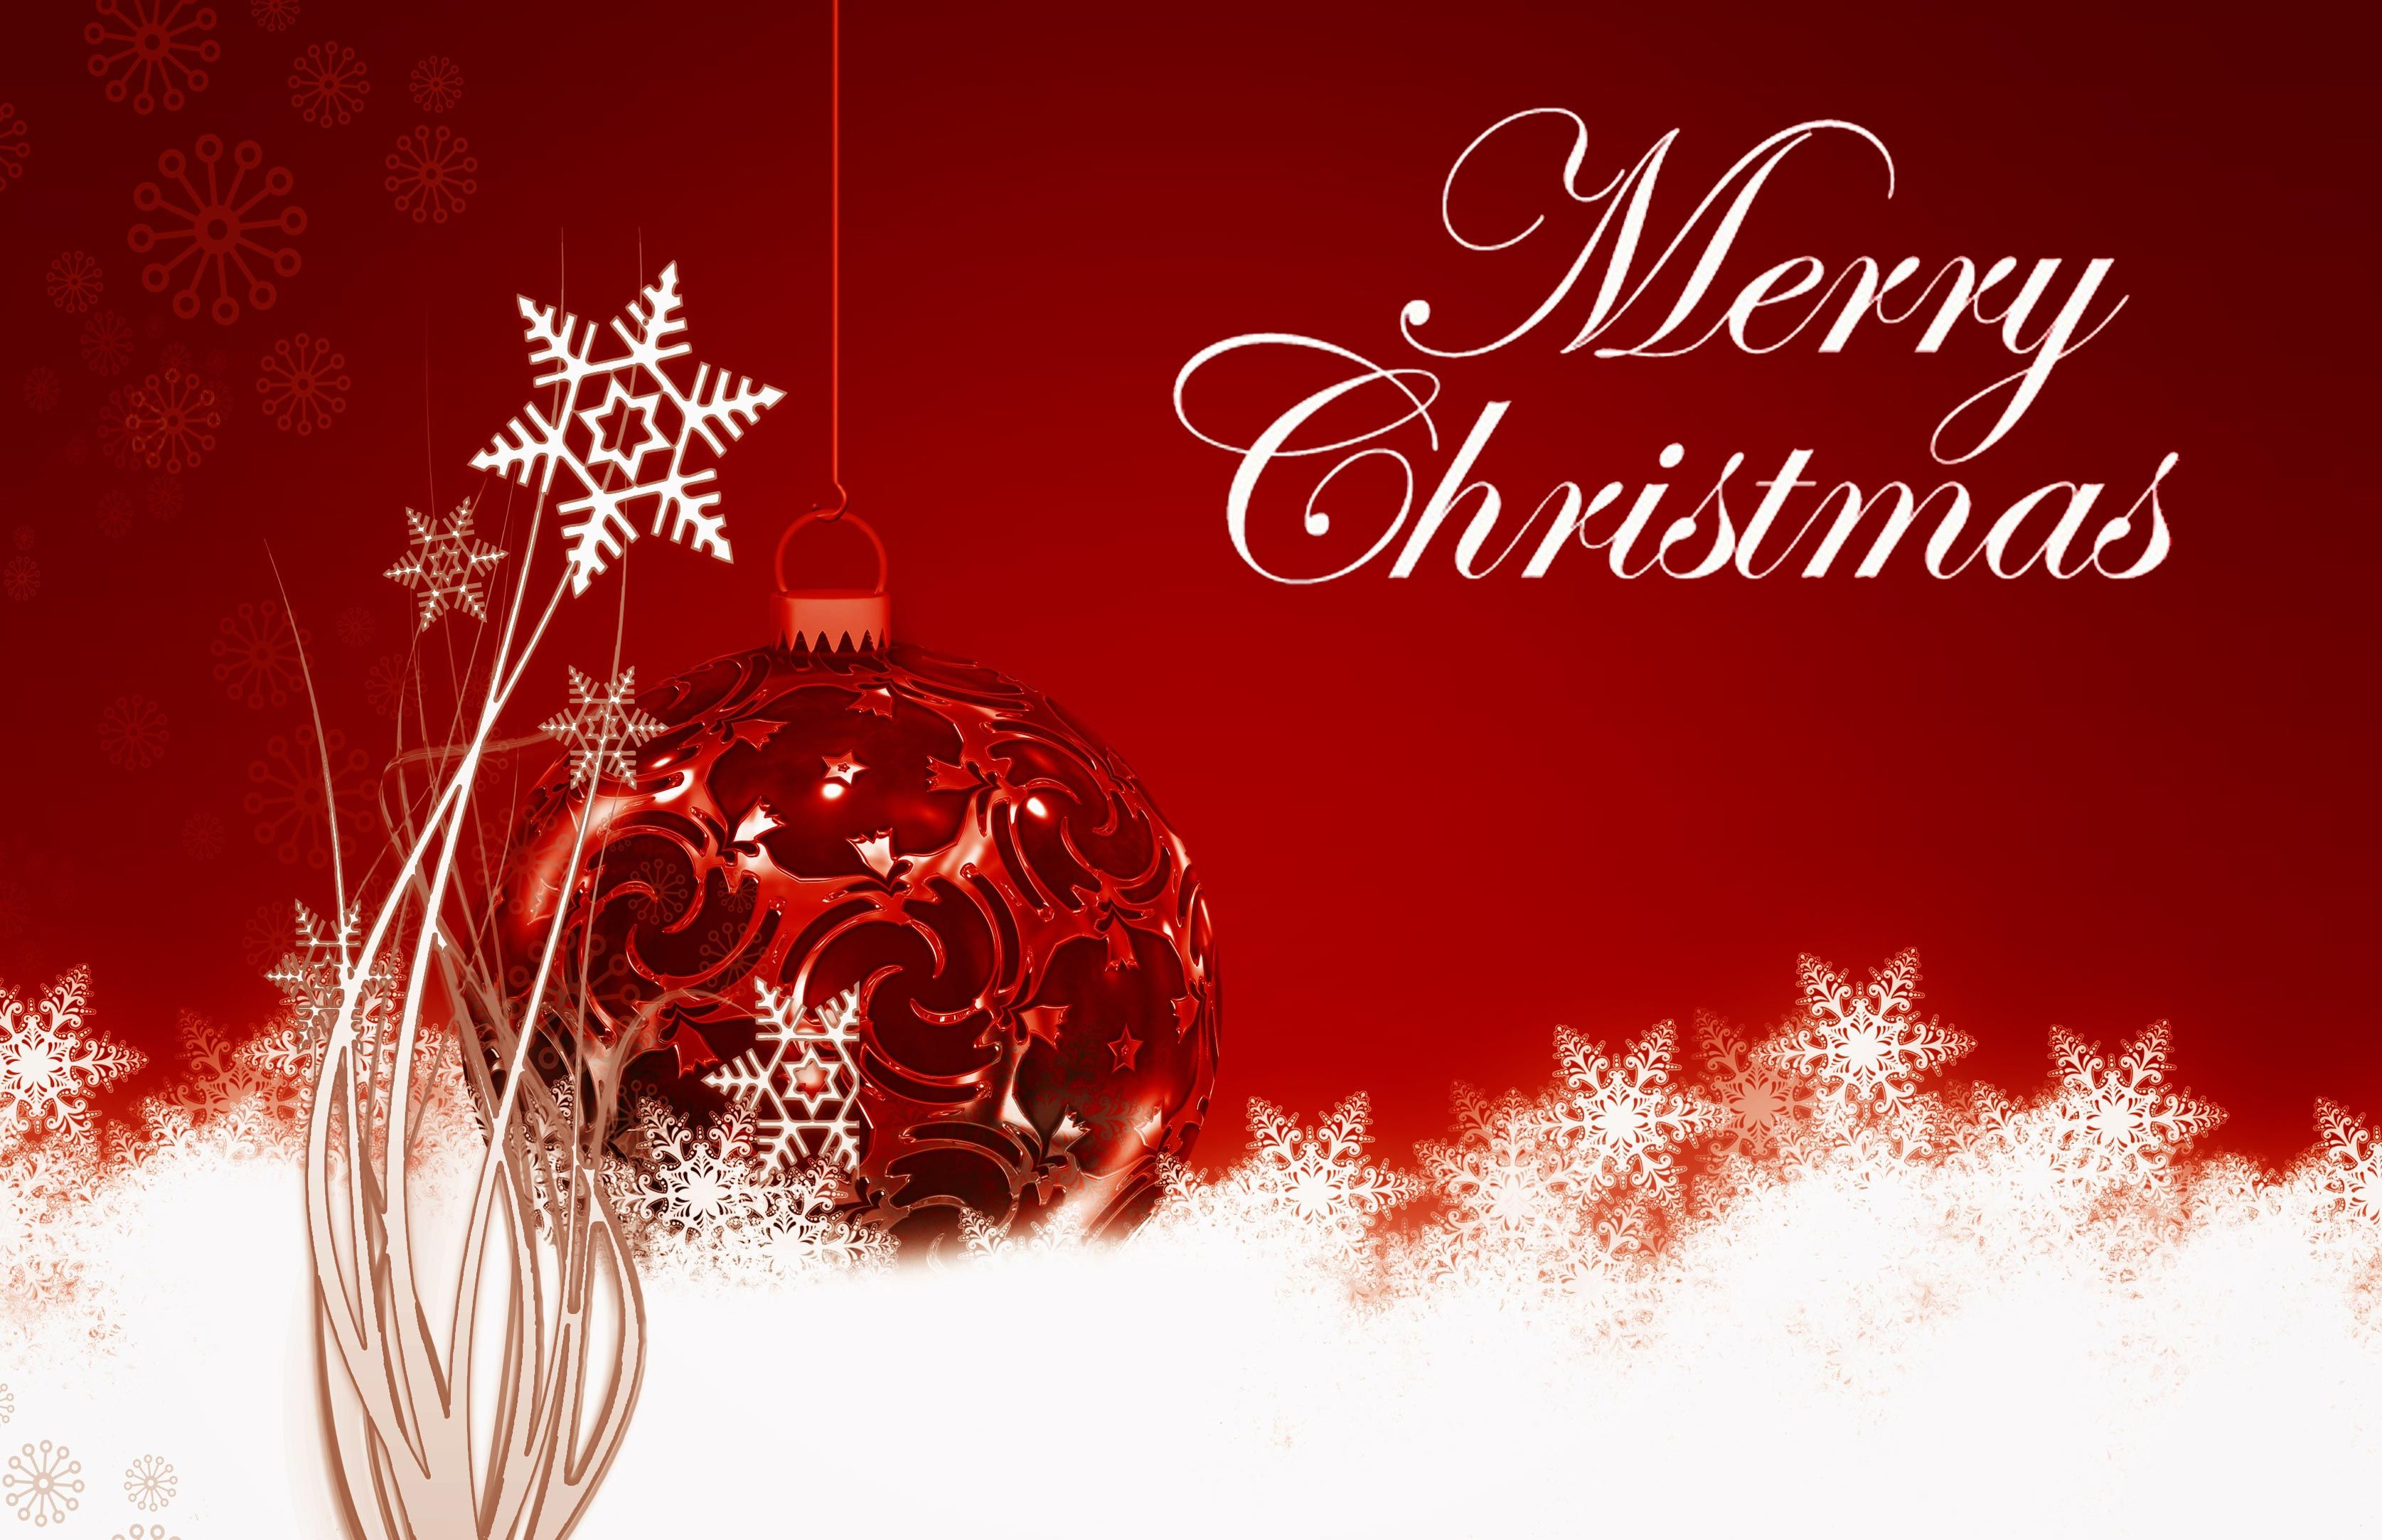 Merry Christmas Ecard Wallpaper Merry Christmas Greeting Card